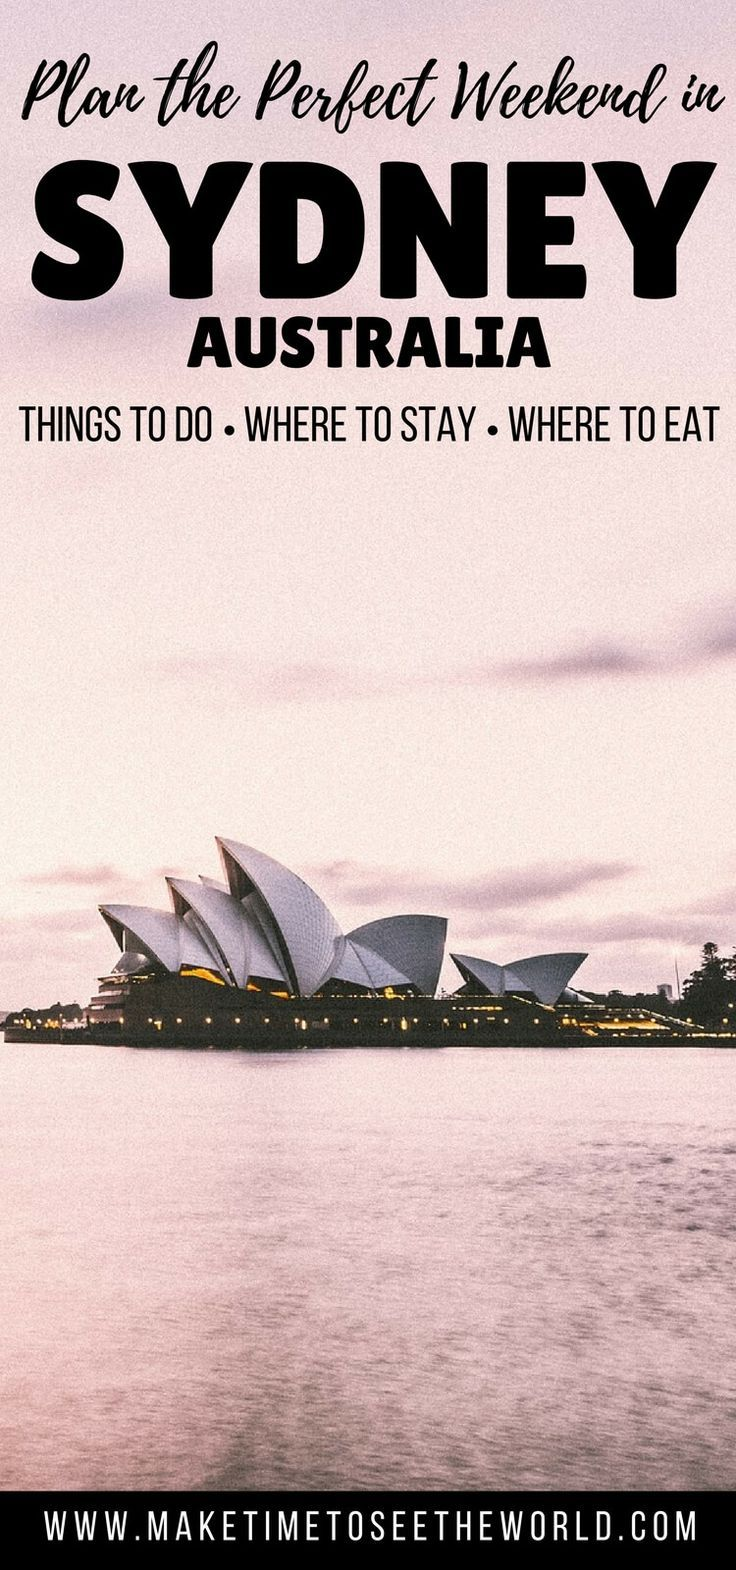 Plan the ultimate Sydney Weekender with suggestions of Things To Do, Where to Stay & Where to Eat to enjoy your short trip to the city ****************************************************************************************************** Things To Do in S